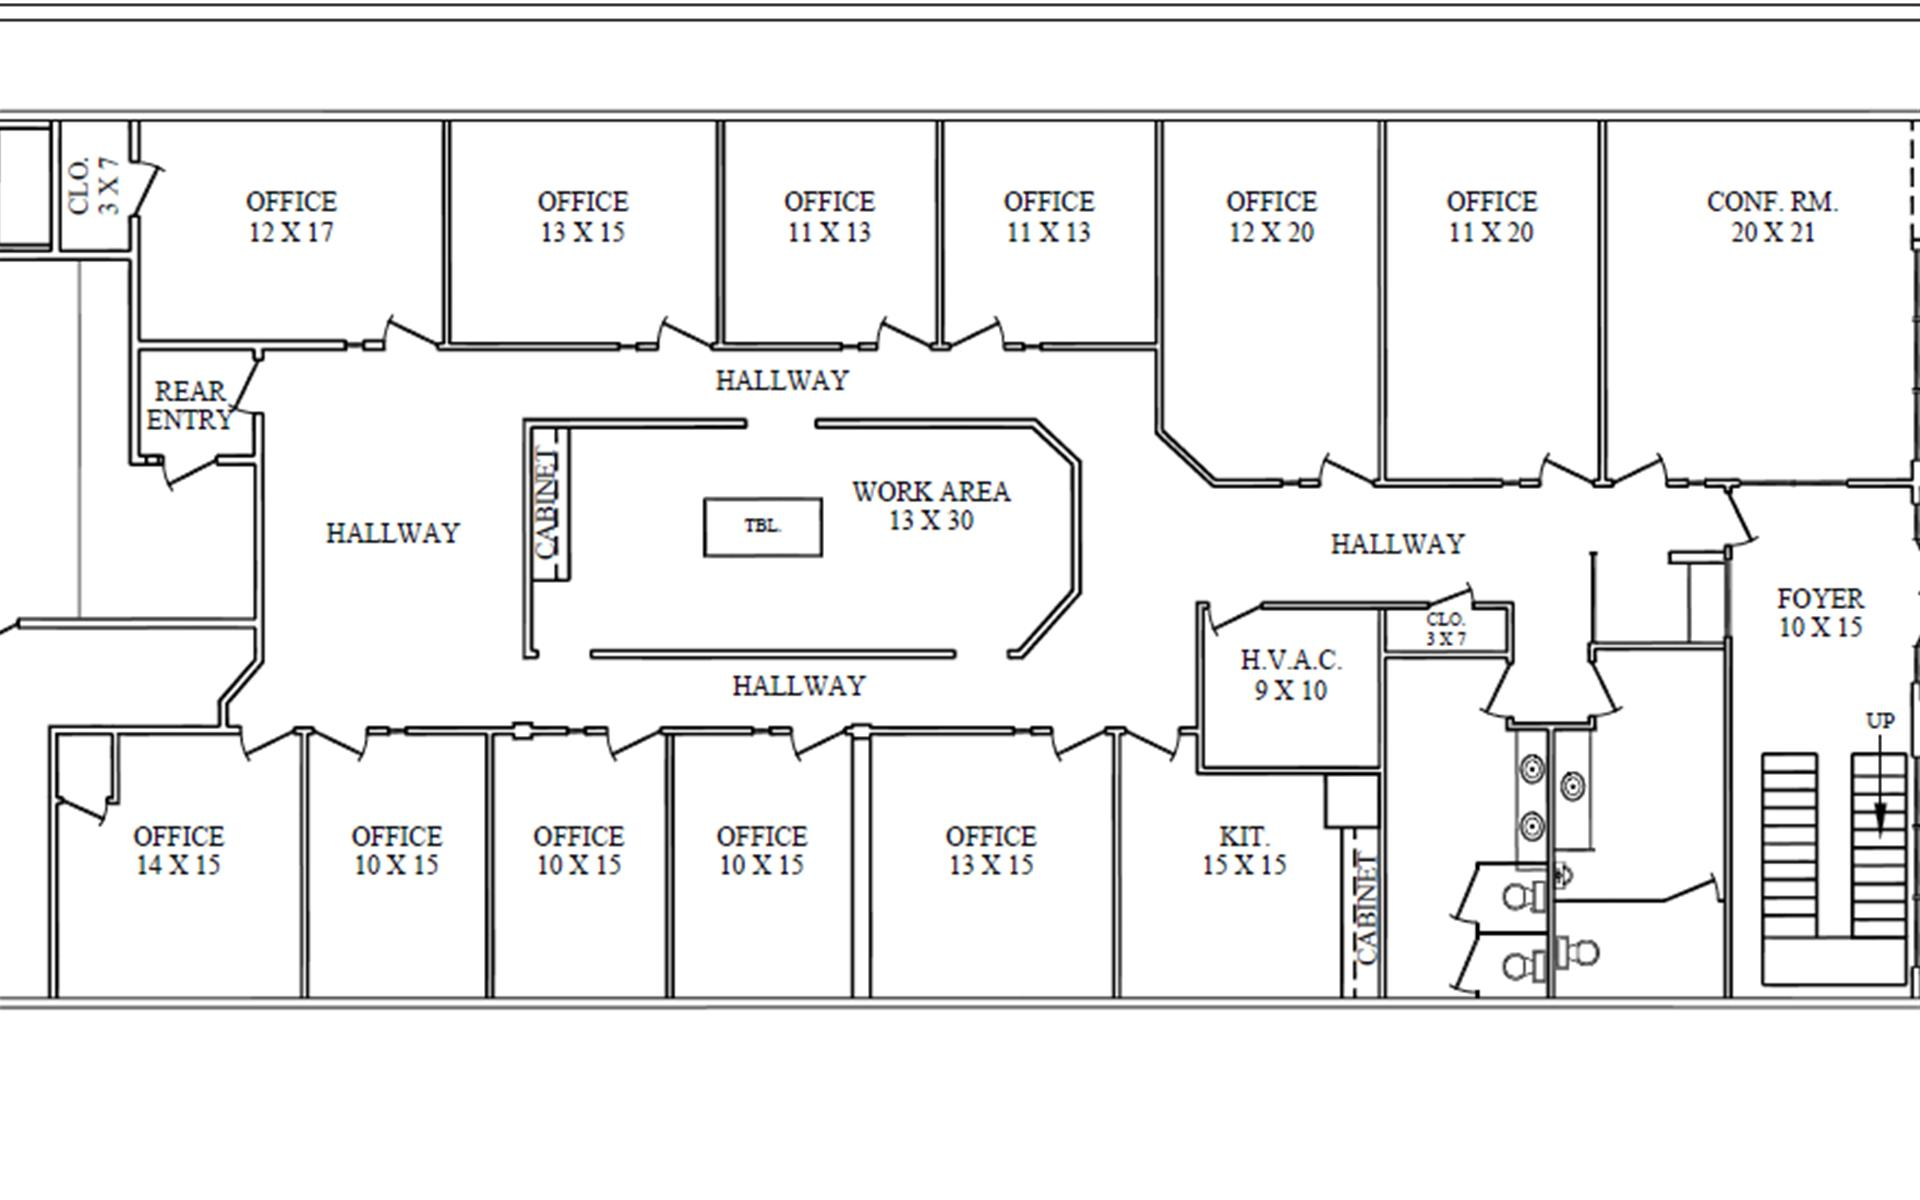 3108 W 6th - Office Suite 1